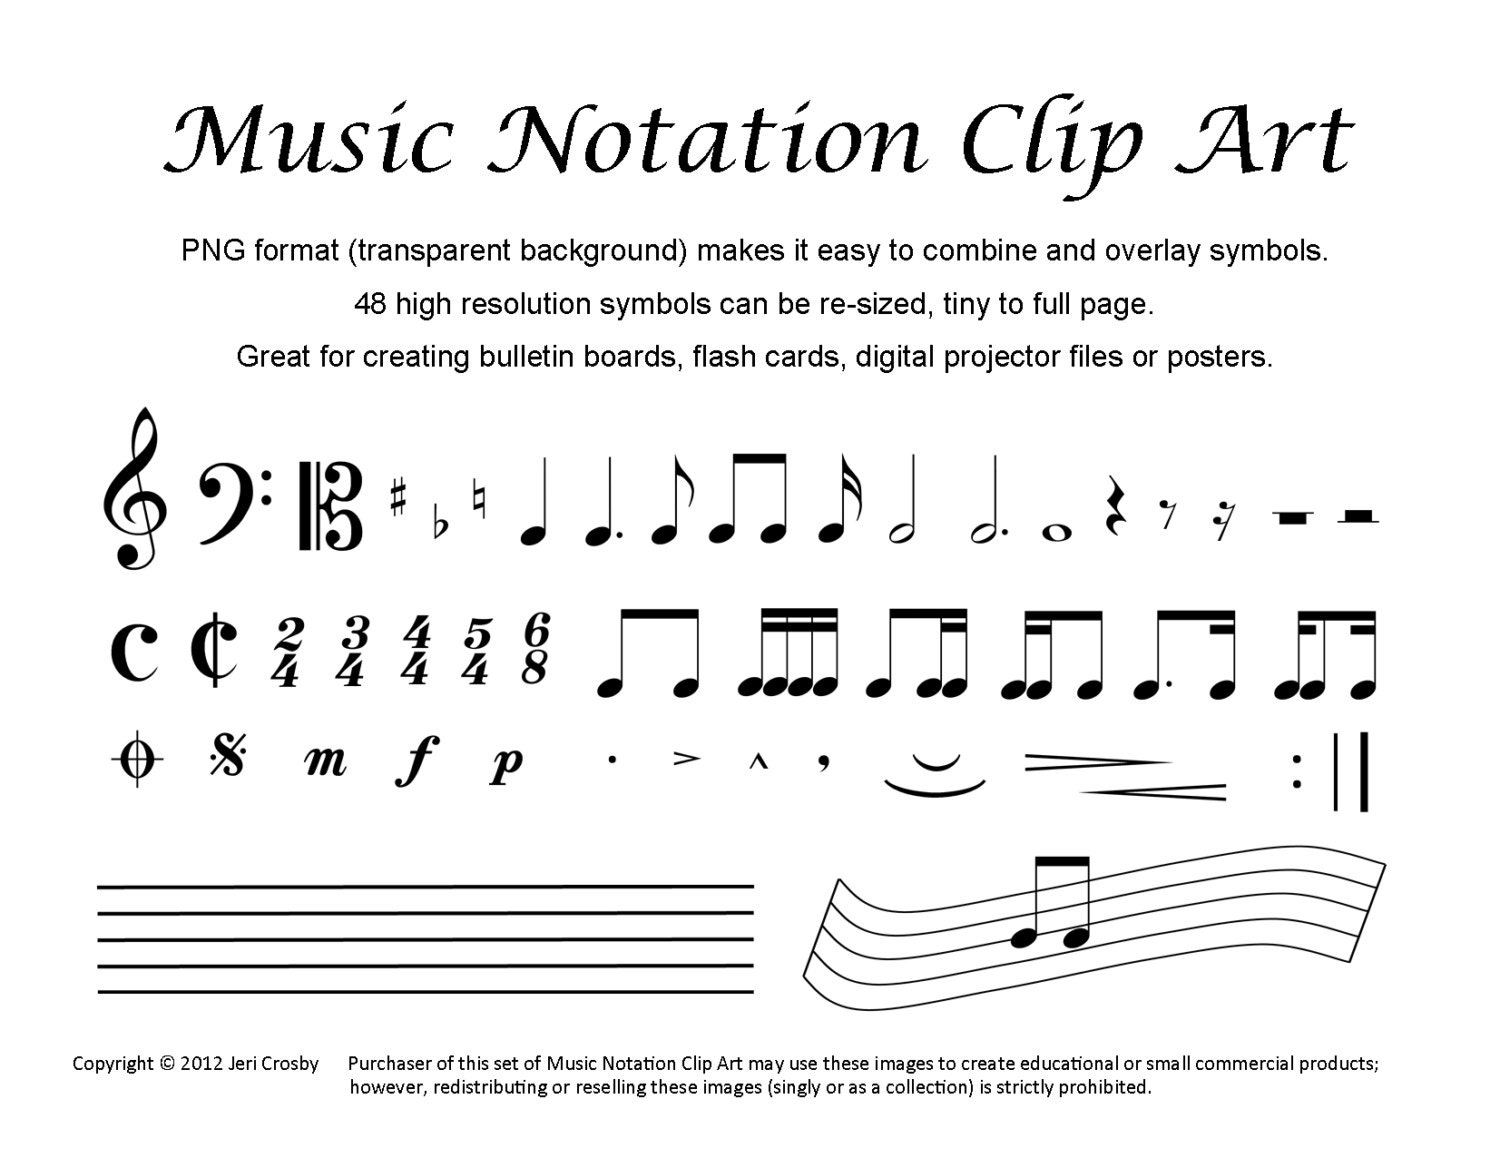 Notation clip art 48 common symbols zoom buycottarizona Choice Image